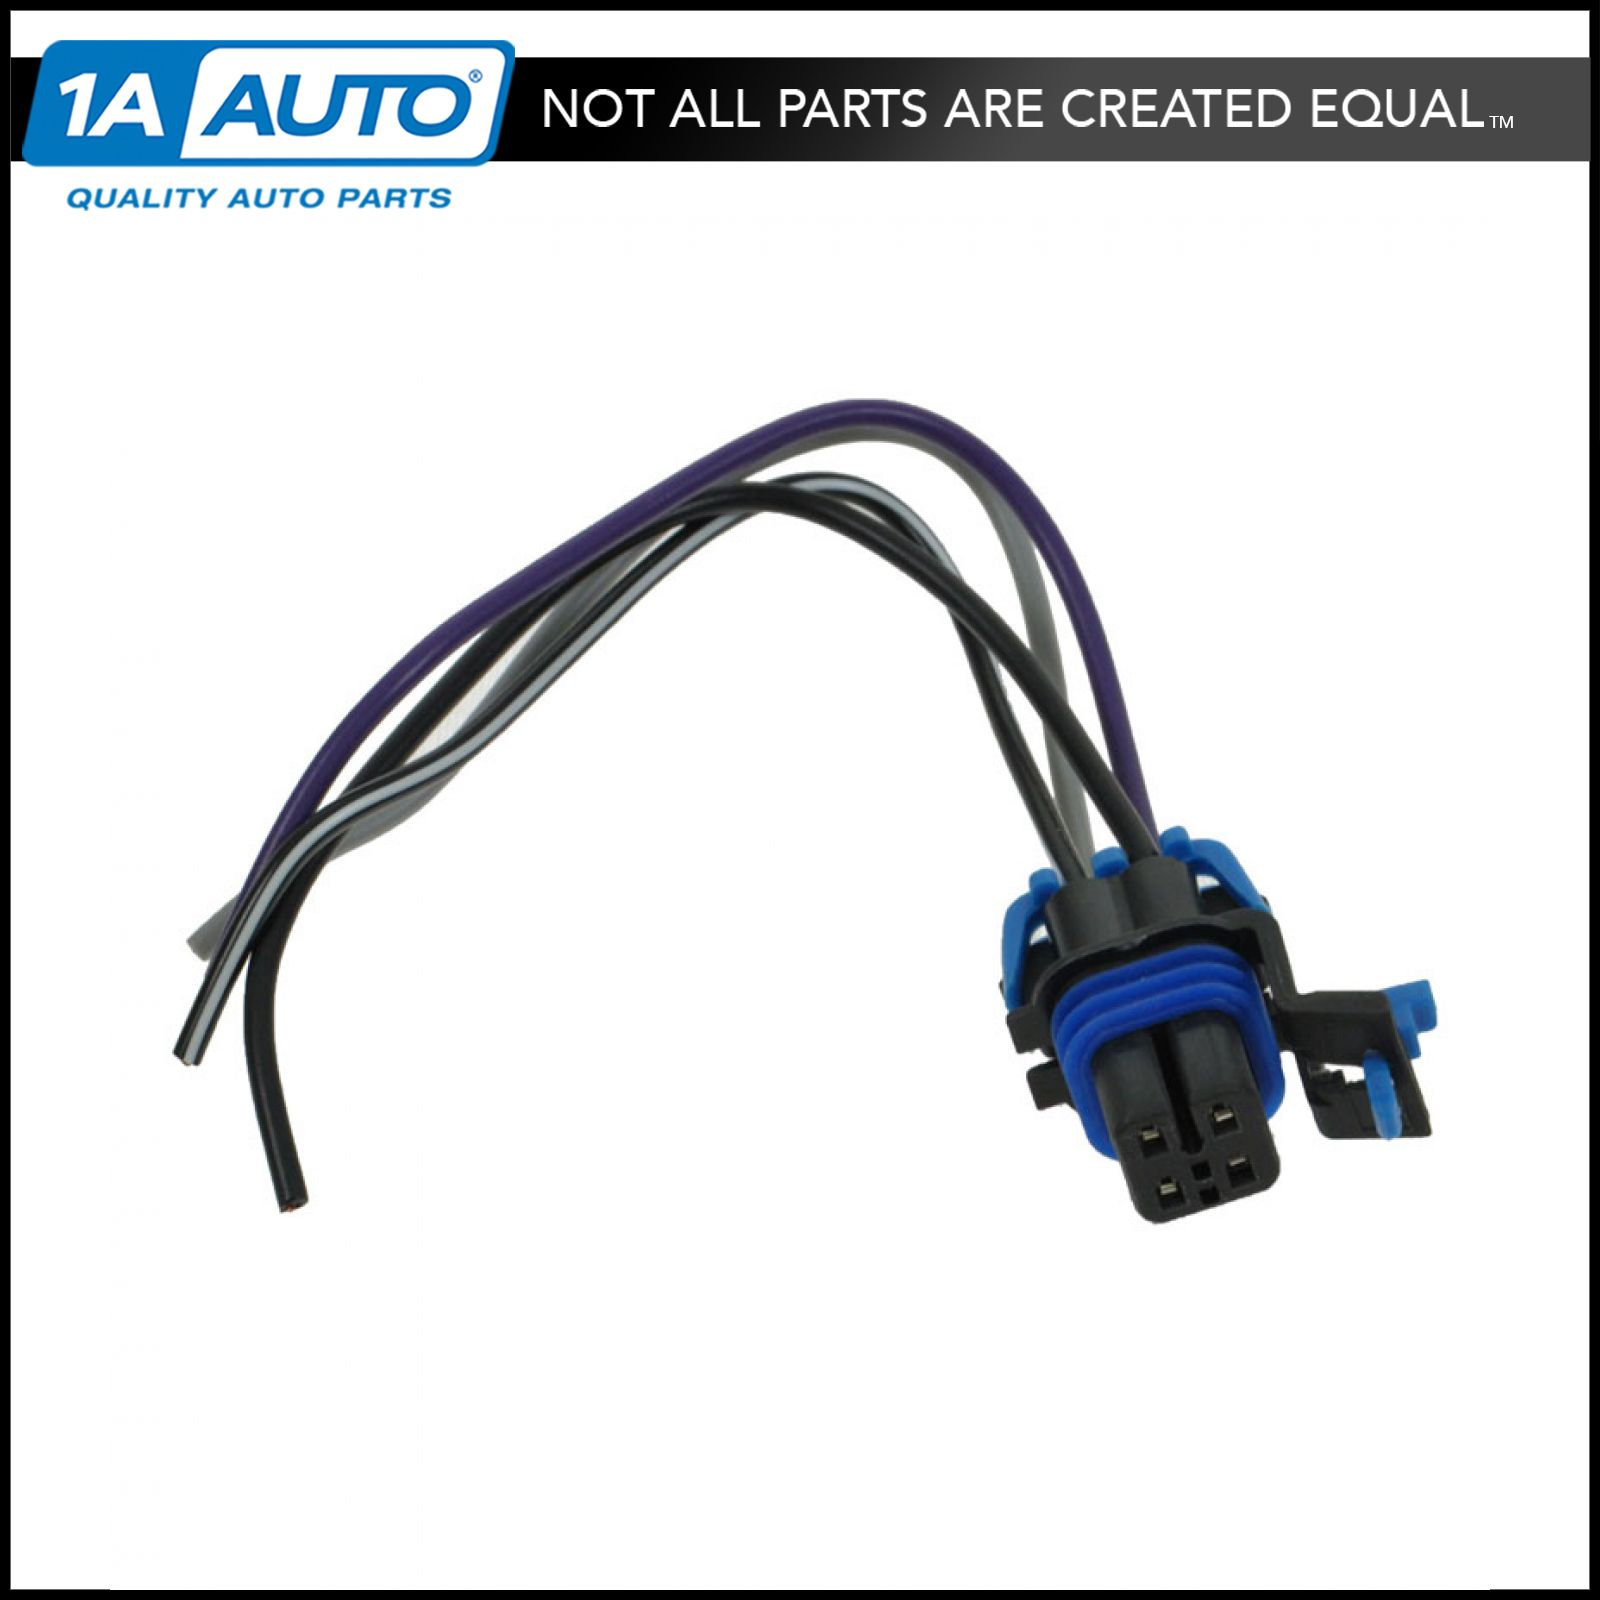 Details about Fuel Pump Wiring Harness with Square Connector 4 Wire on gm window switch wiring, gm fuel lines, gm a/c compressor wiring, gm tail light wiring, gm fuel gauge wiring,